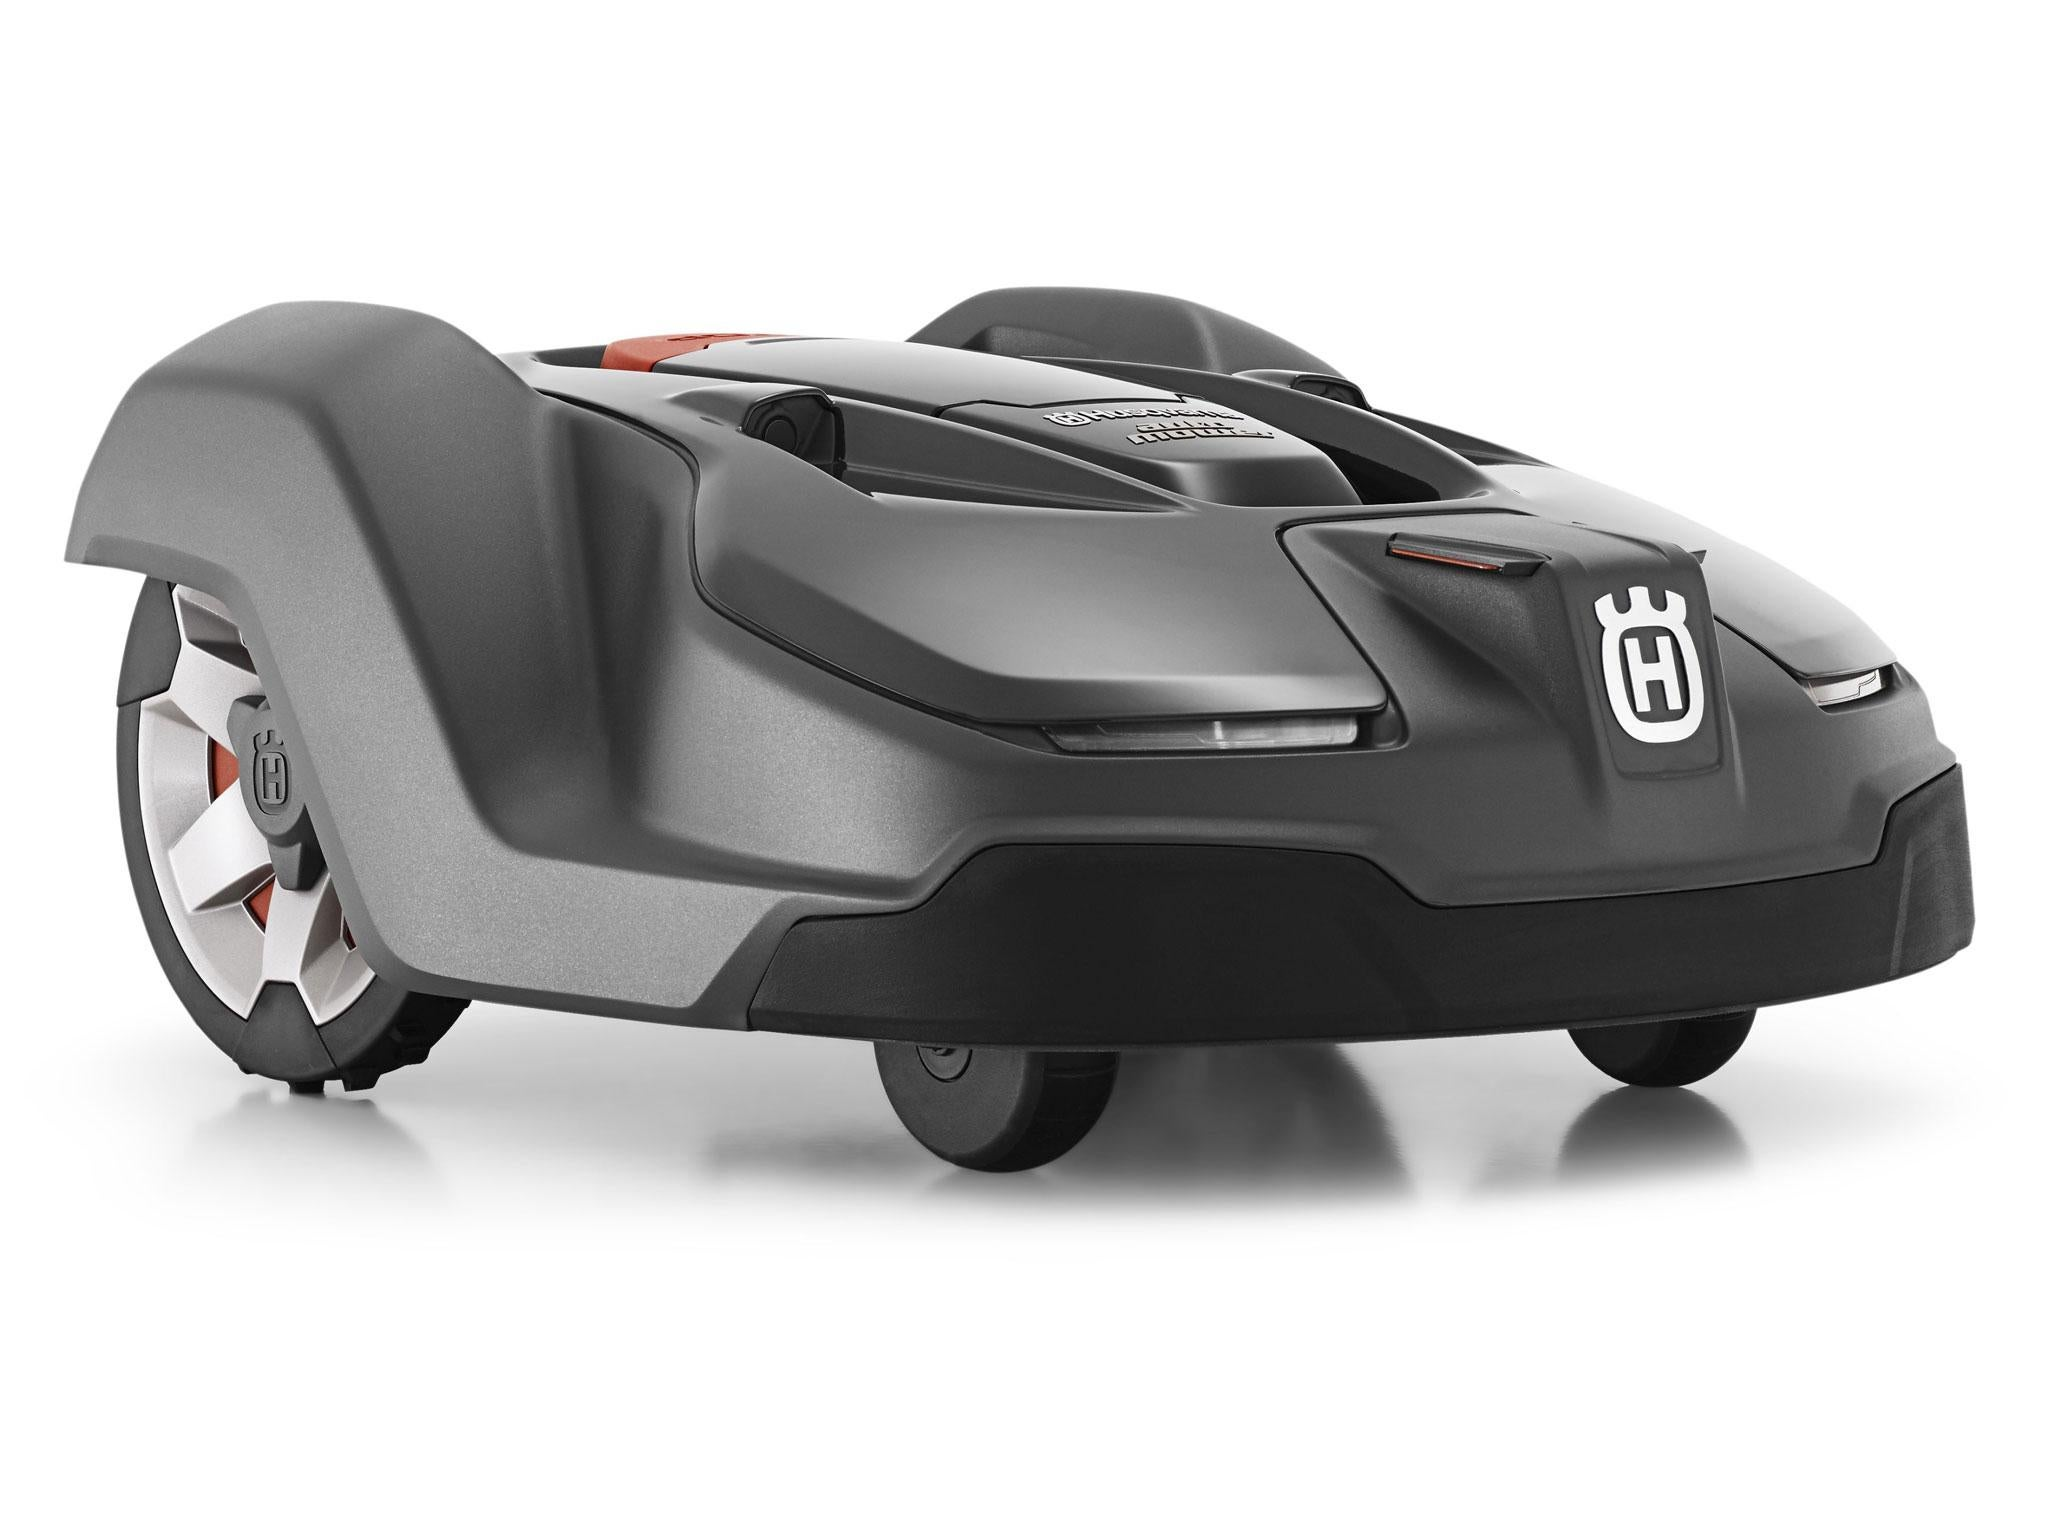 9 best robot lawnmowers the independent the racing car of the robotic mower world it even looks like one this is excellent for complicated lawns including obstacles narrow passages fandeluxe